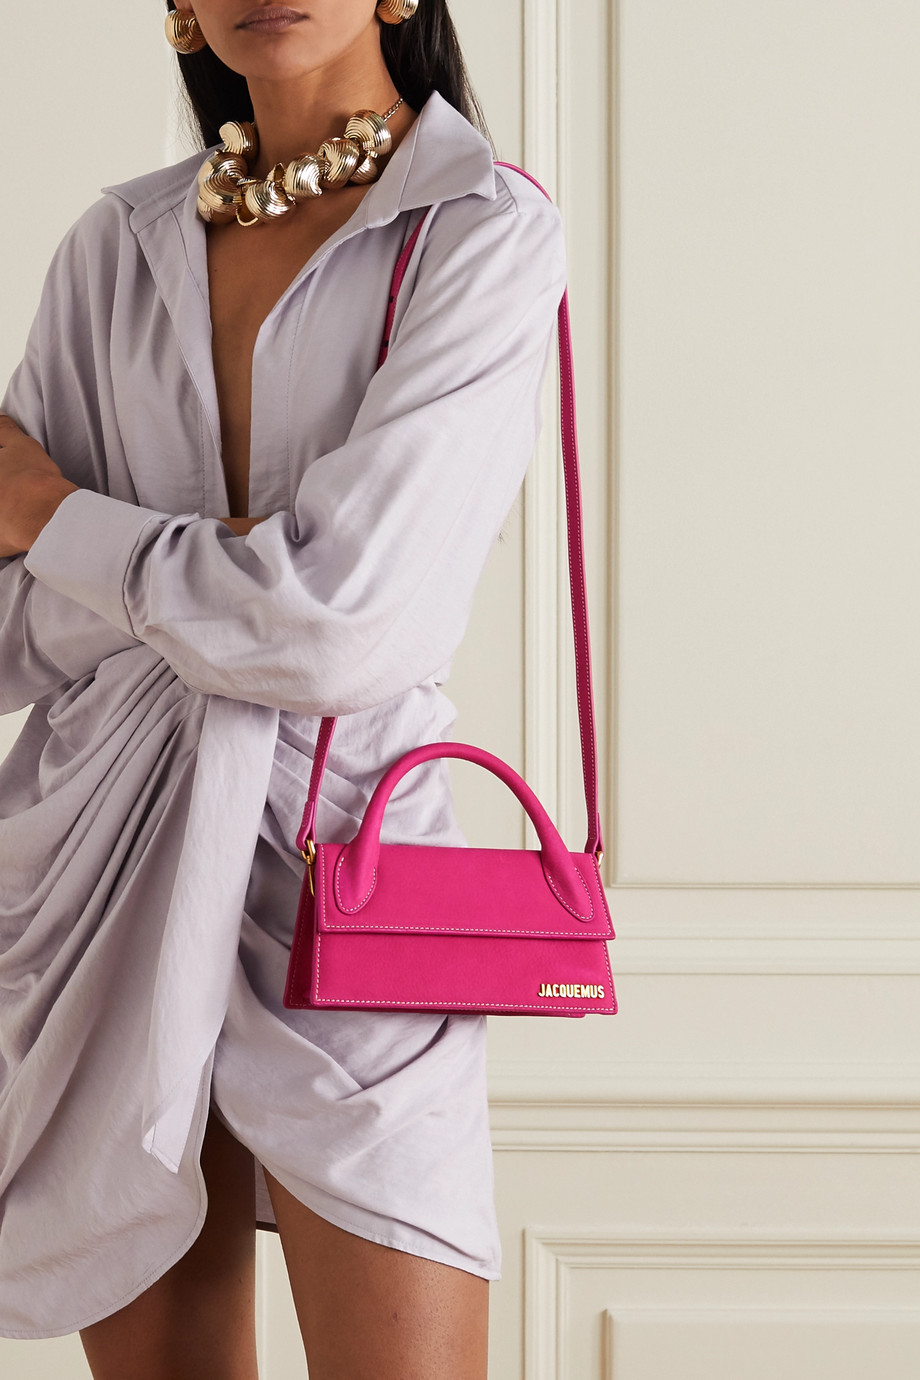 Jacquemus Le Chiquito Long nubuck tote